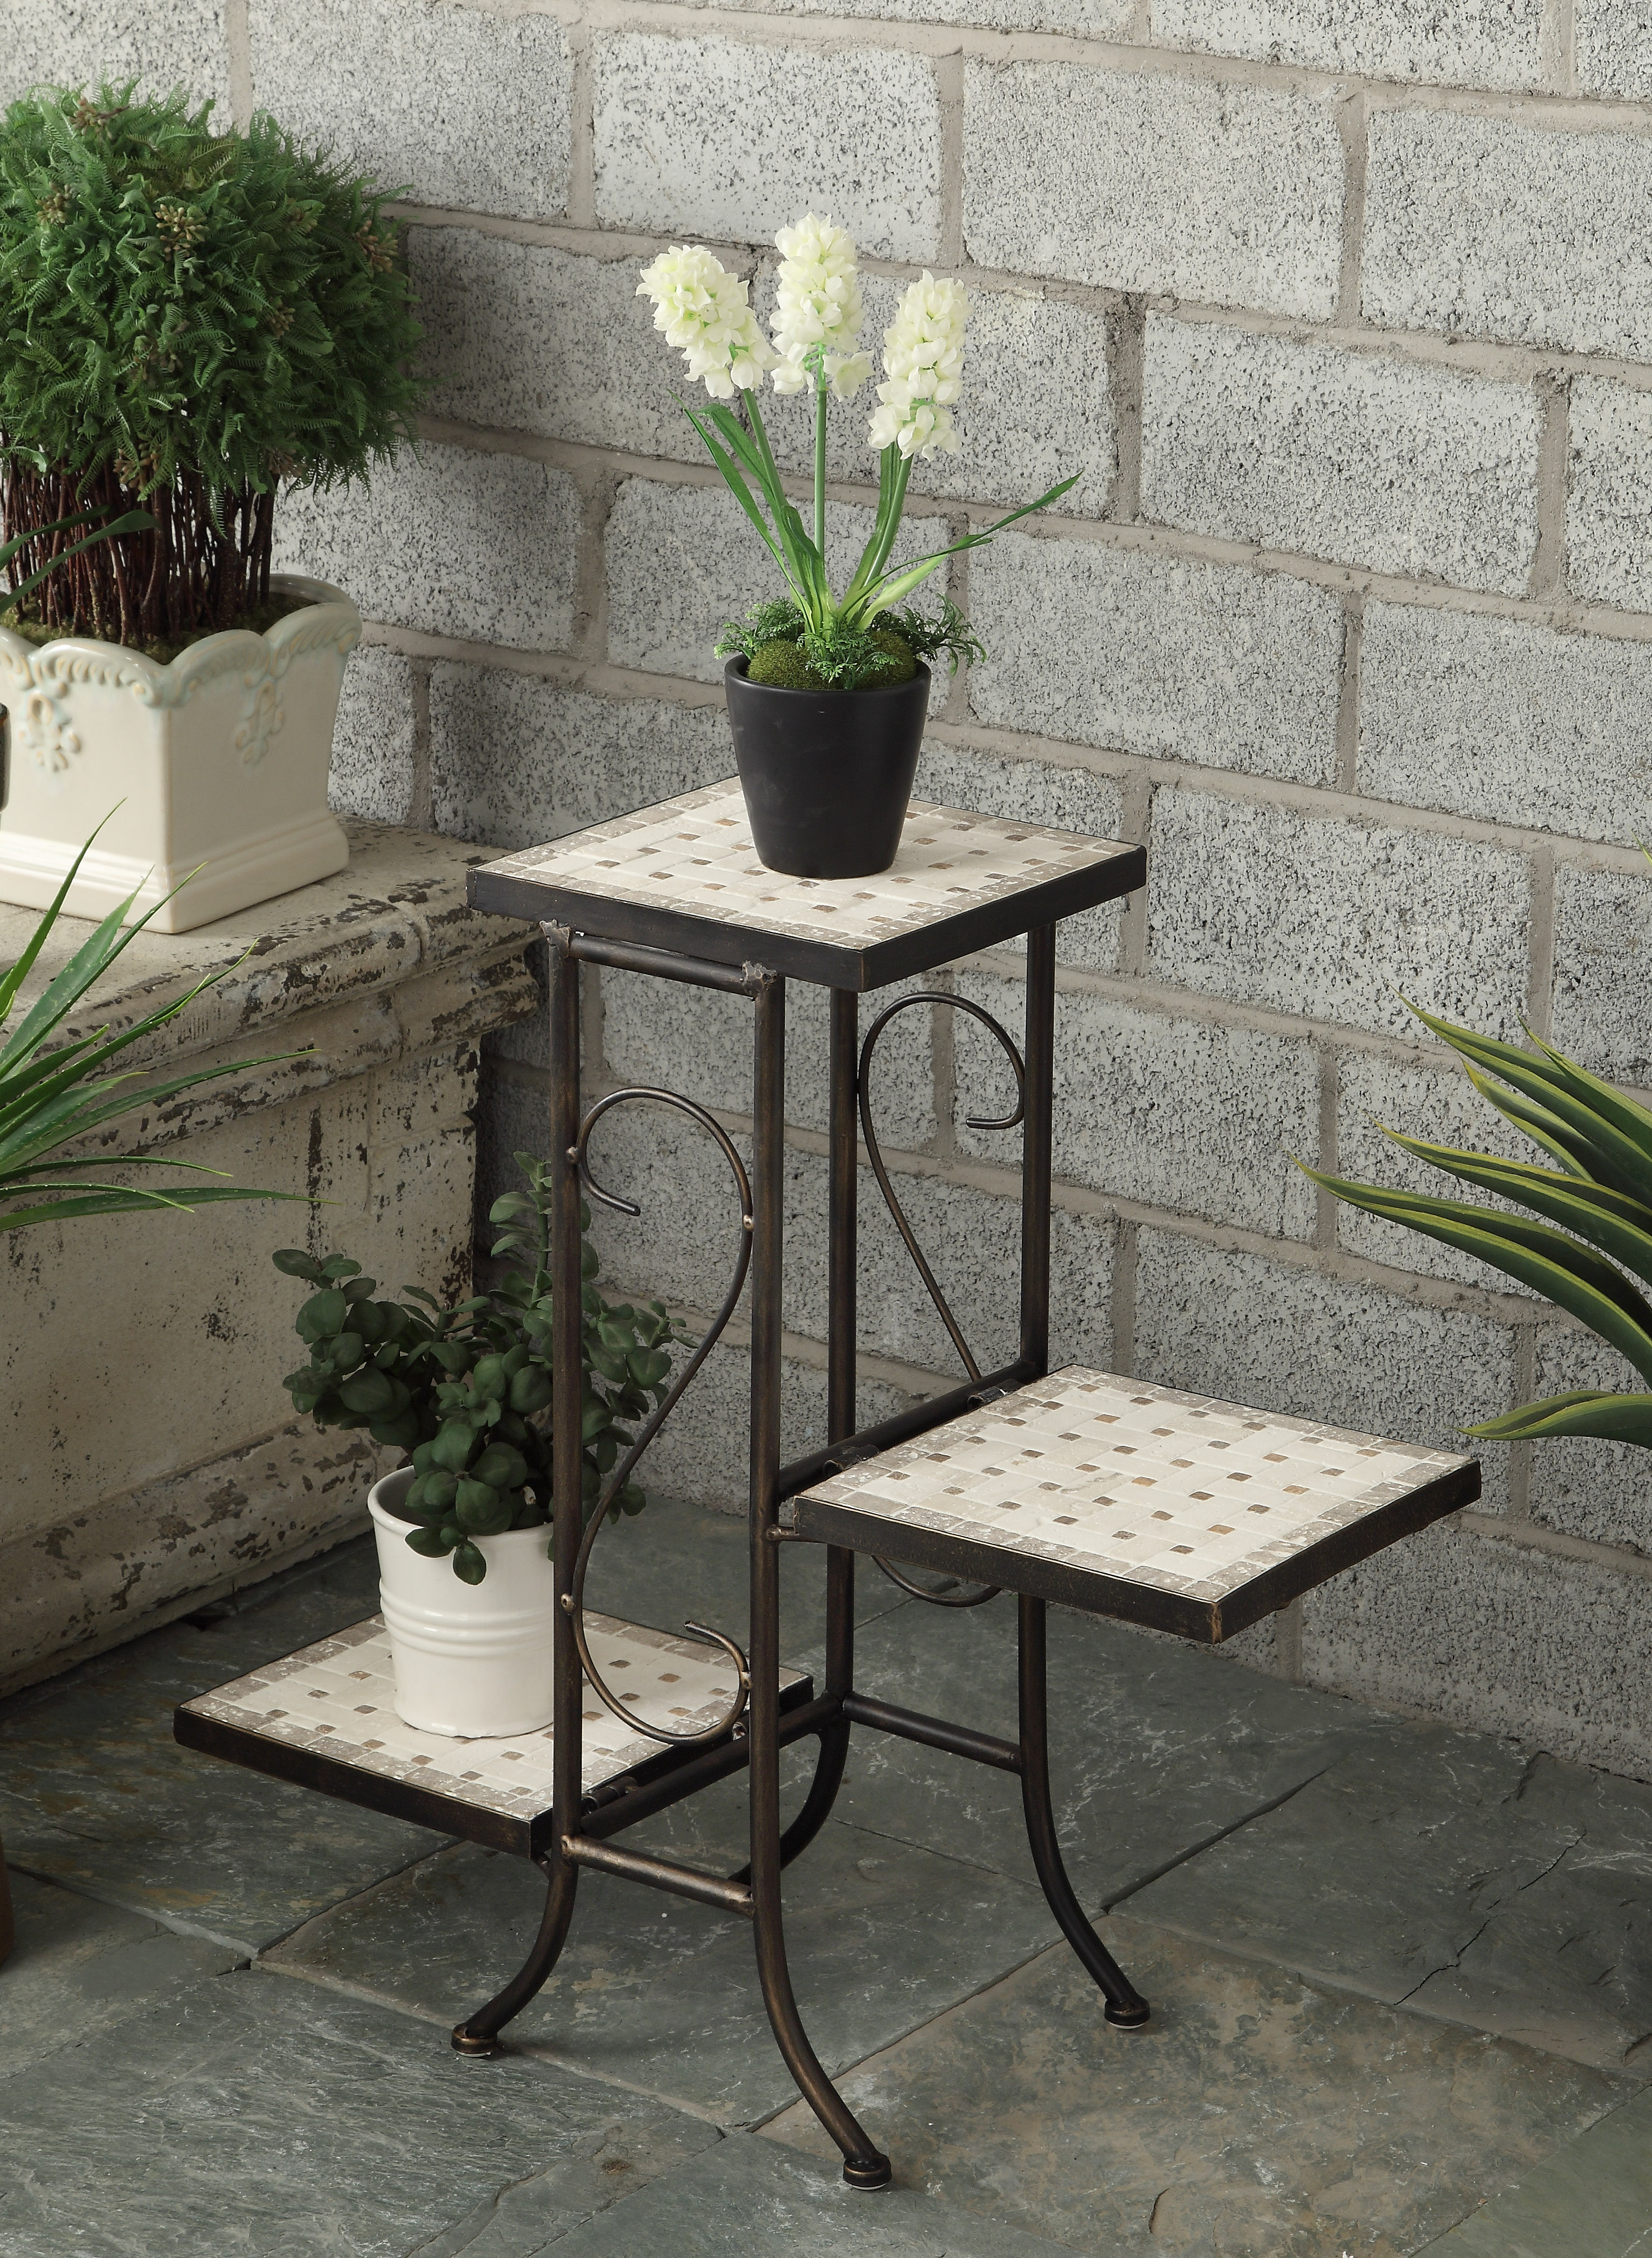 3 tier plant stand w travertine top - Tier plant stand outdoor ...